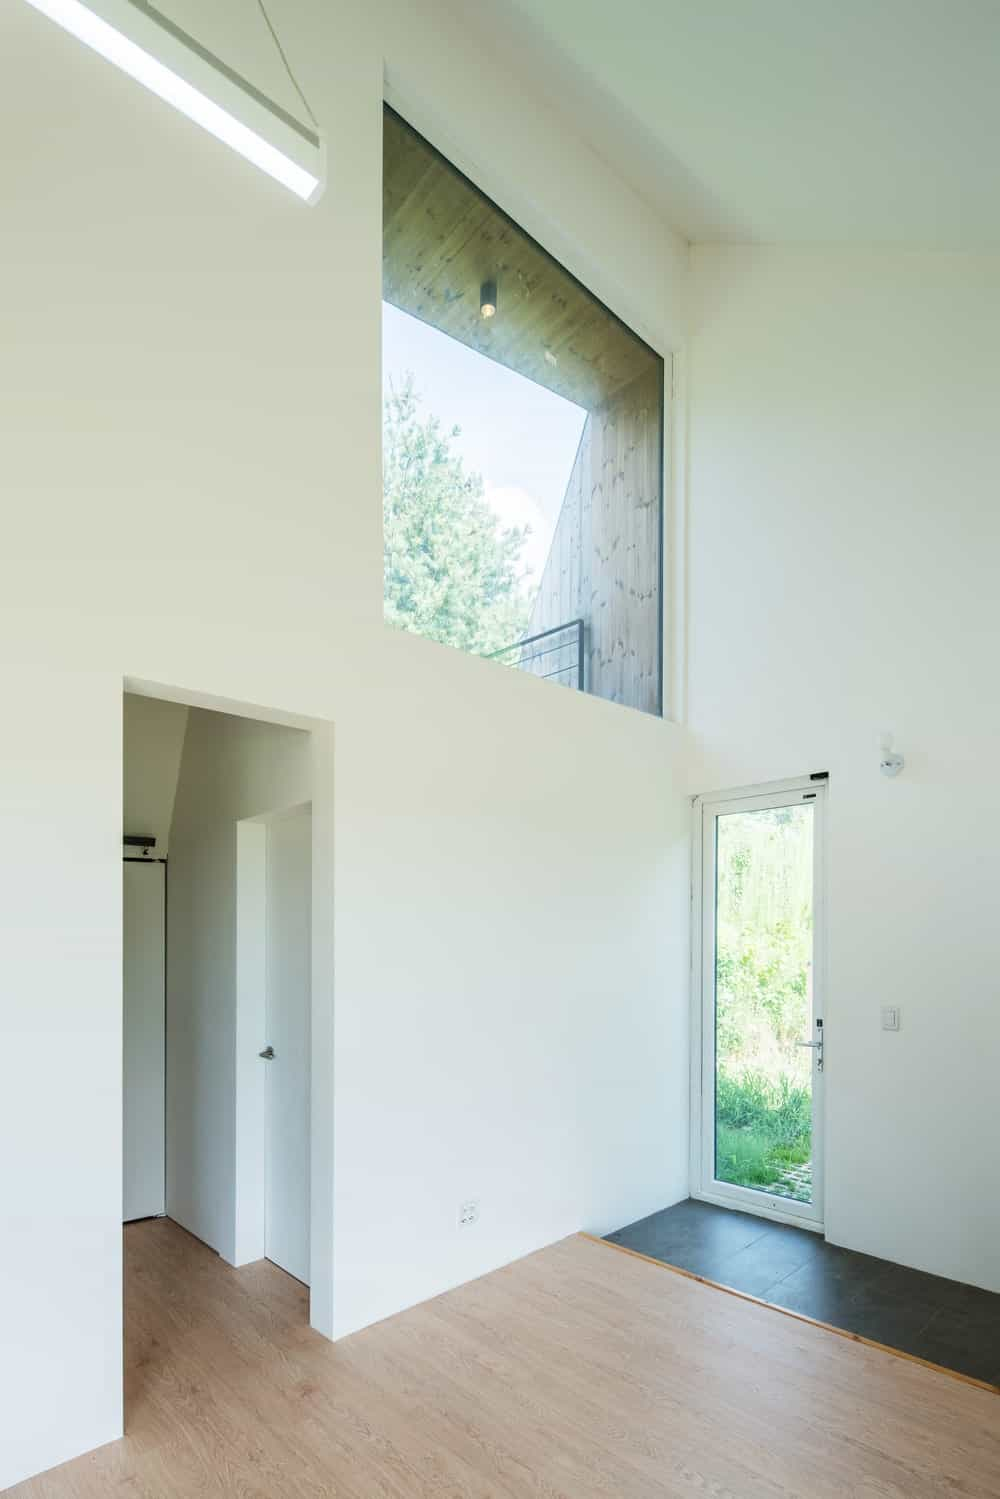 This is a look at the interiors of the house with bright white walls and a soaring ceiling.